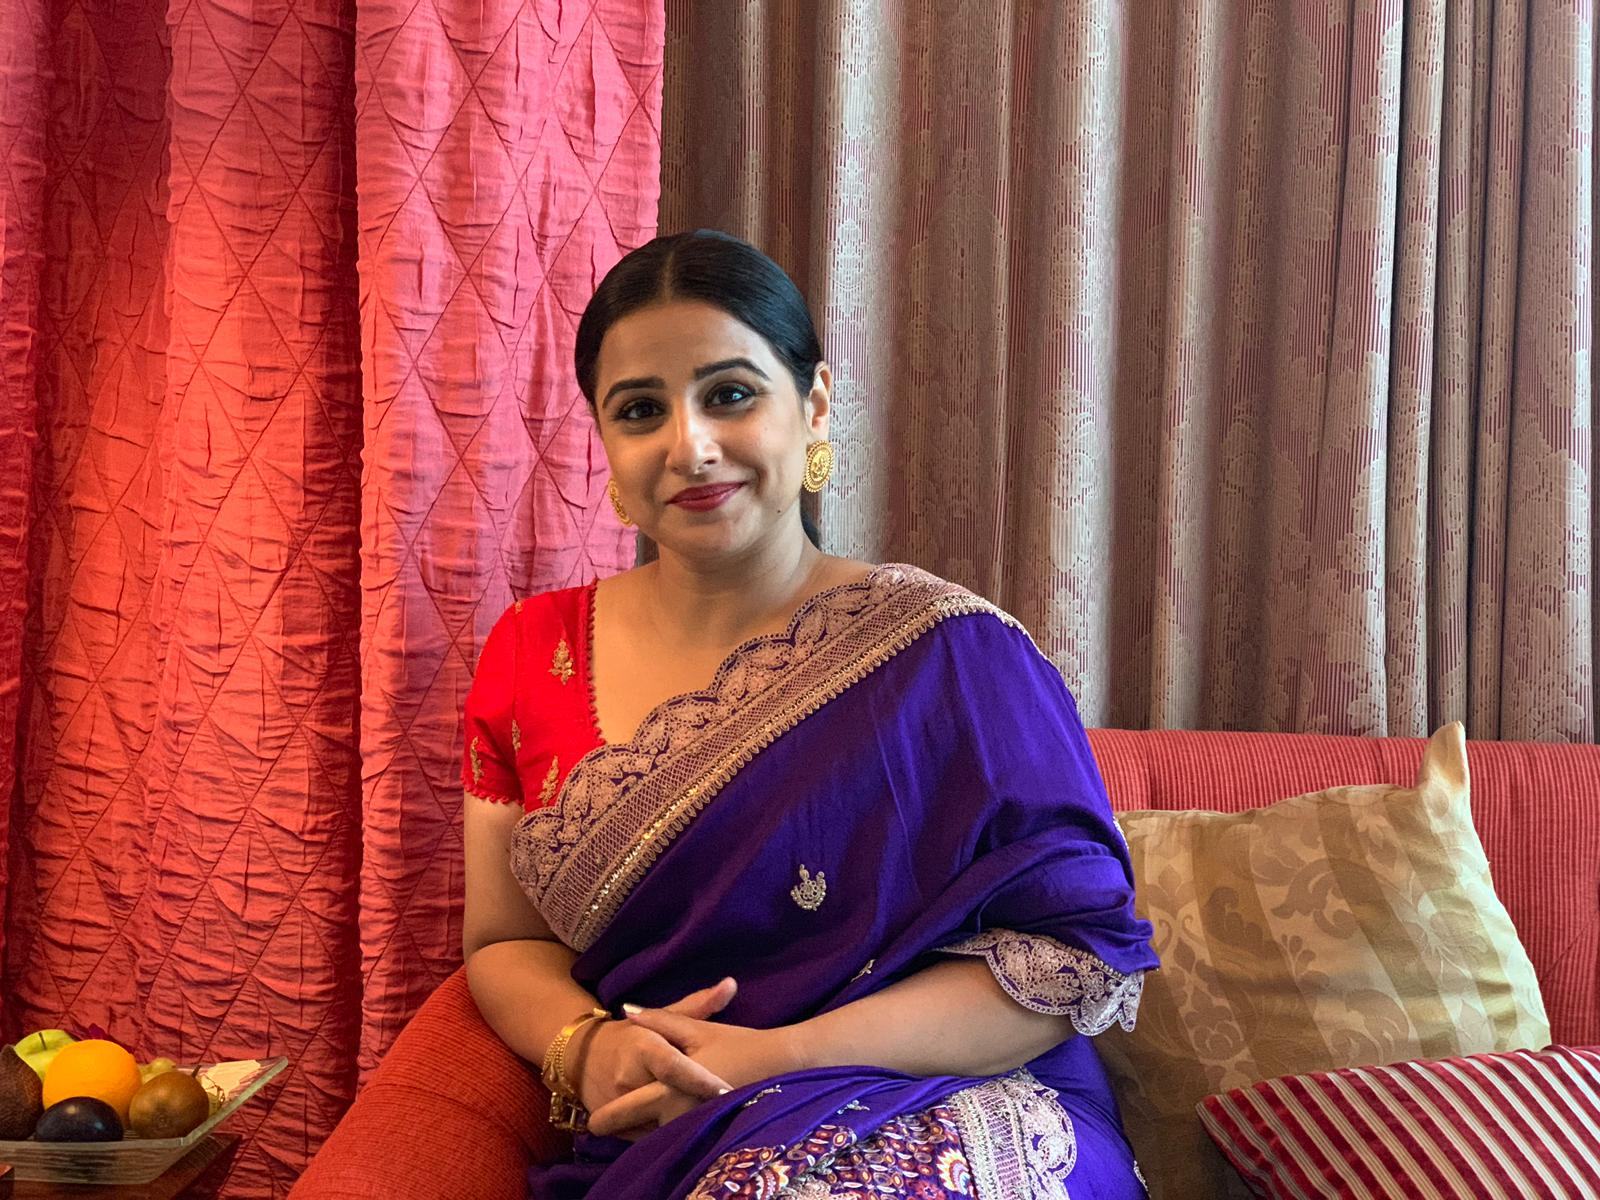 Vidya Balan plays Ajith's wife in Nerkonda Paarvai. Photo courtesy: Connected to India